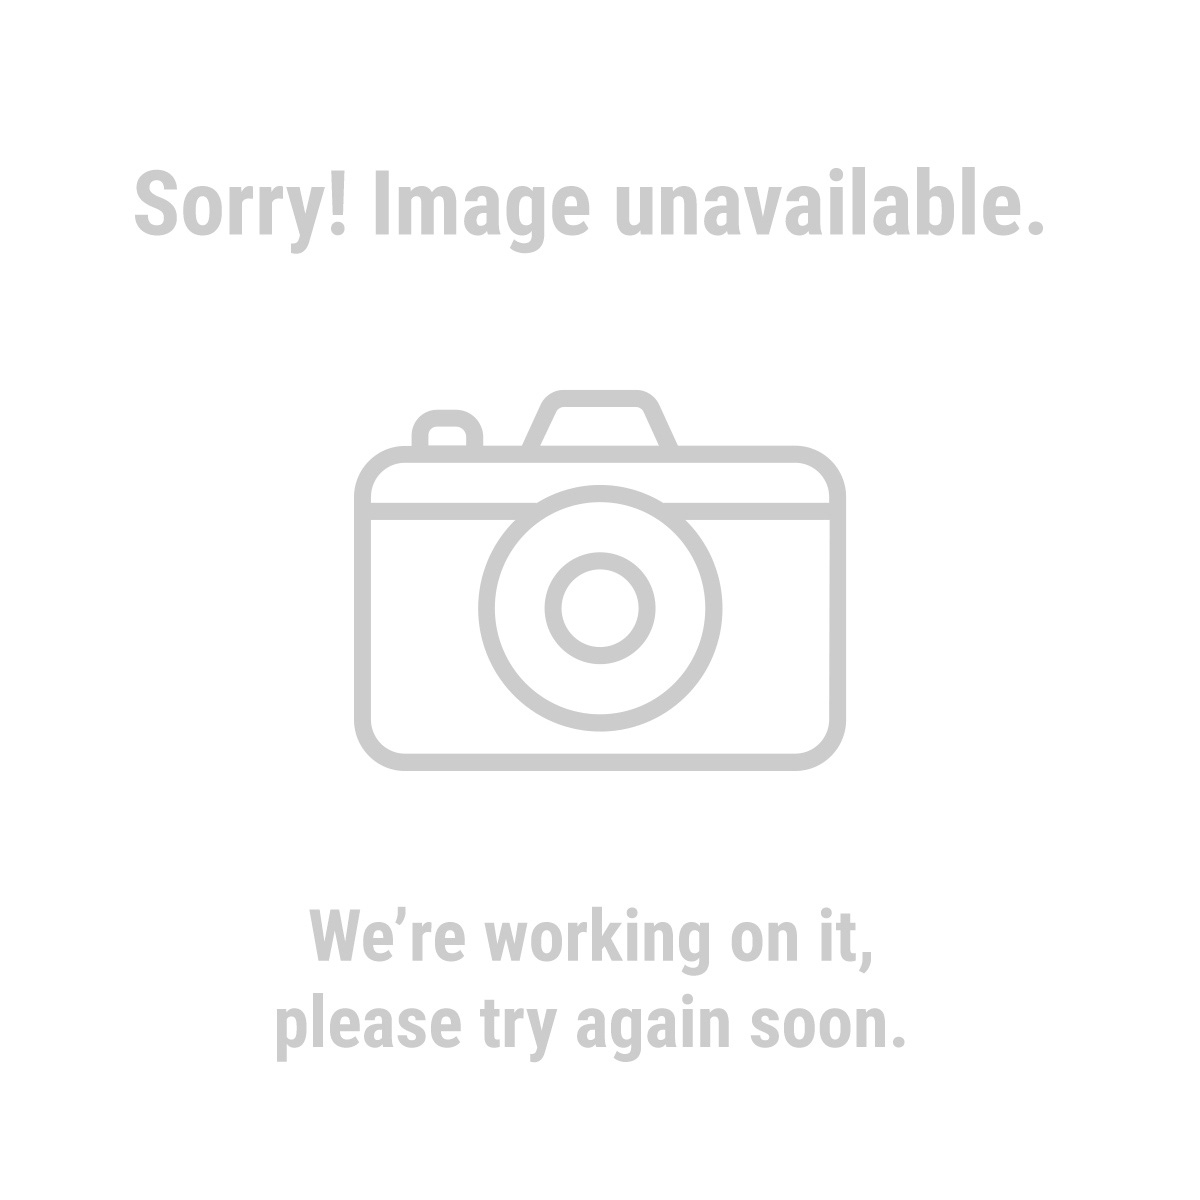 "Windsor Design 95616 36 Piece 1/4"" Fluted Dowel Pins"